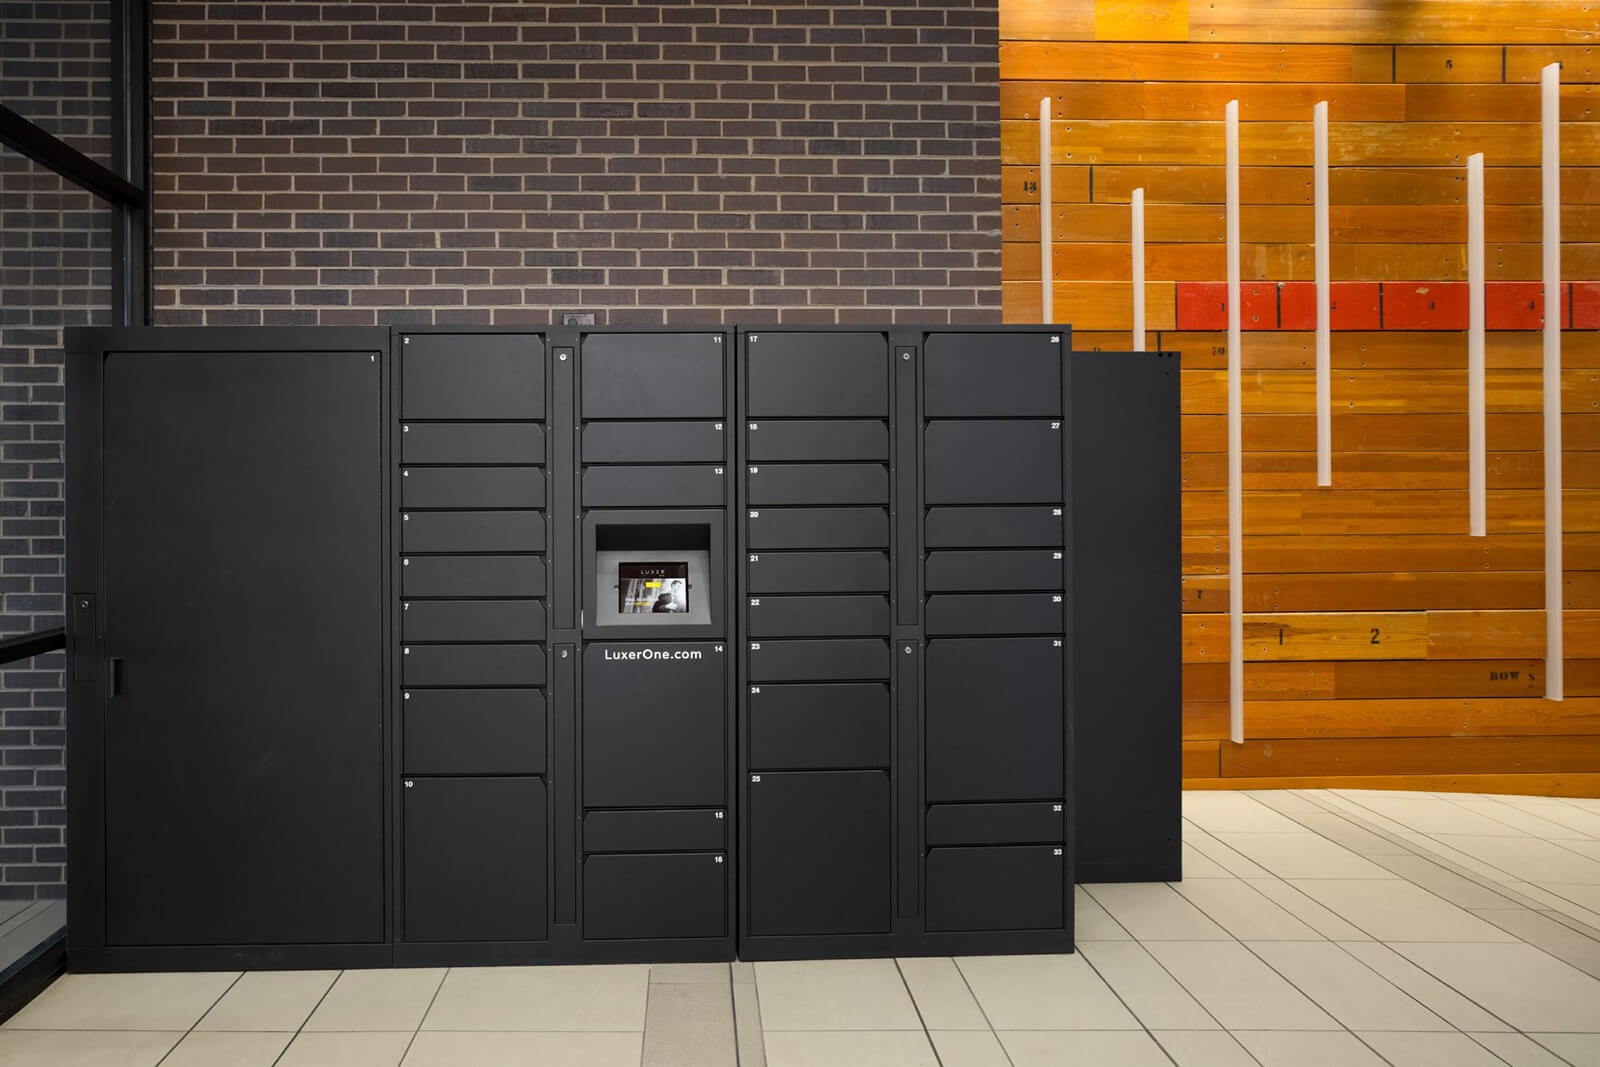 24-Hour Package Lockers at The Casey, Denver, Colorado